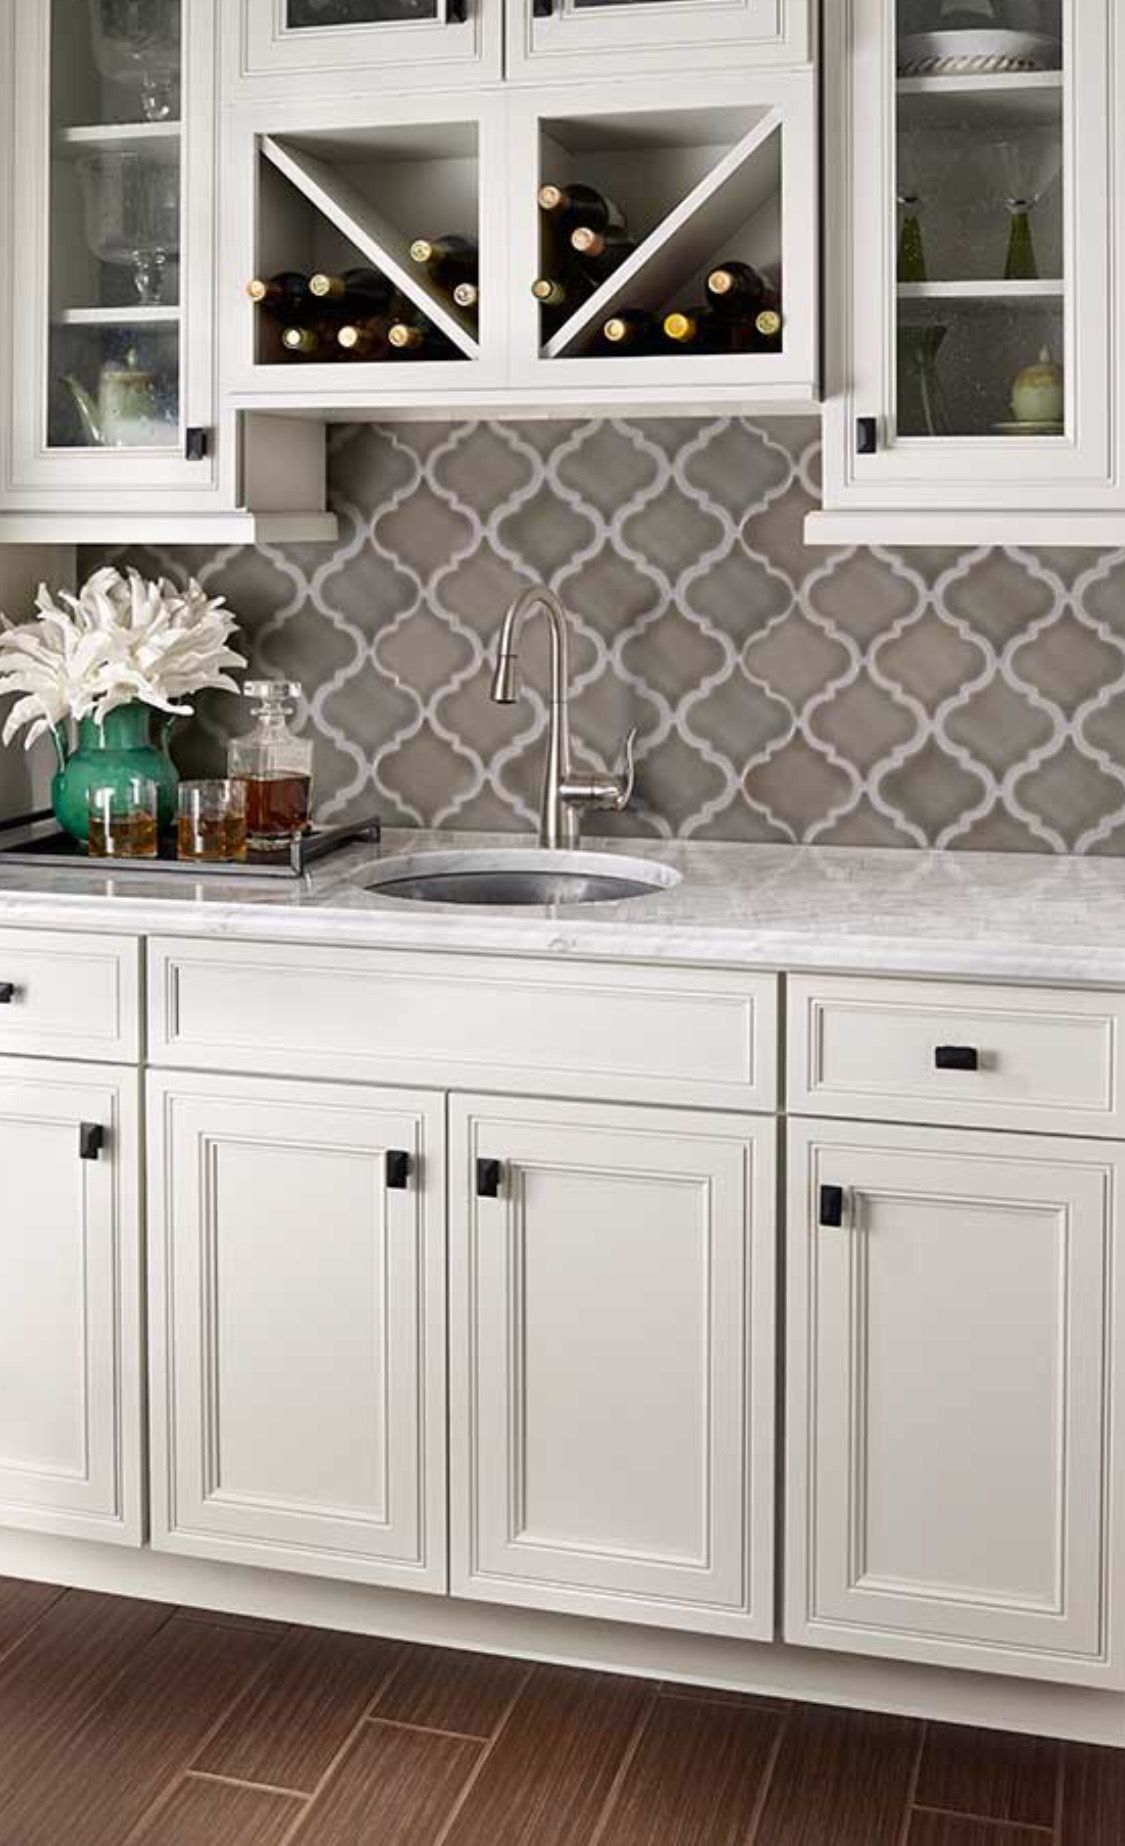 Arabesque pattern with crackle finish. Color dove grey. | Wine Bars ...